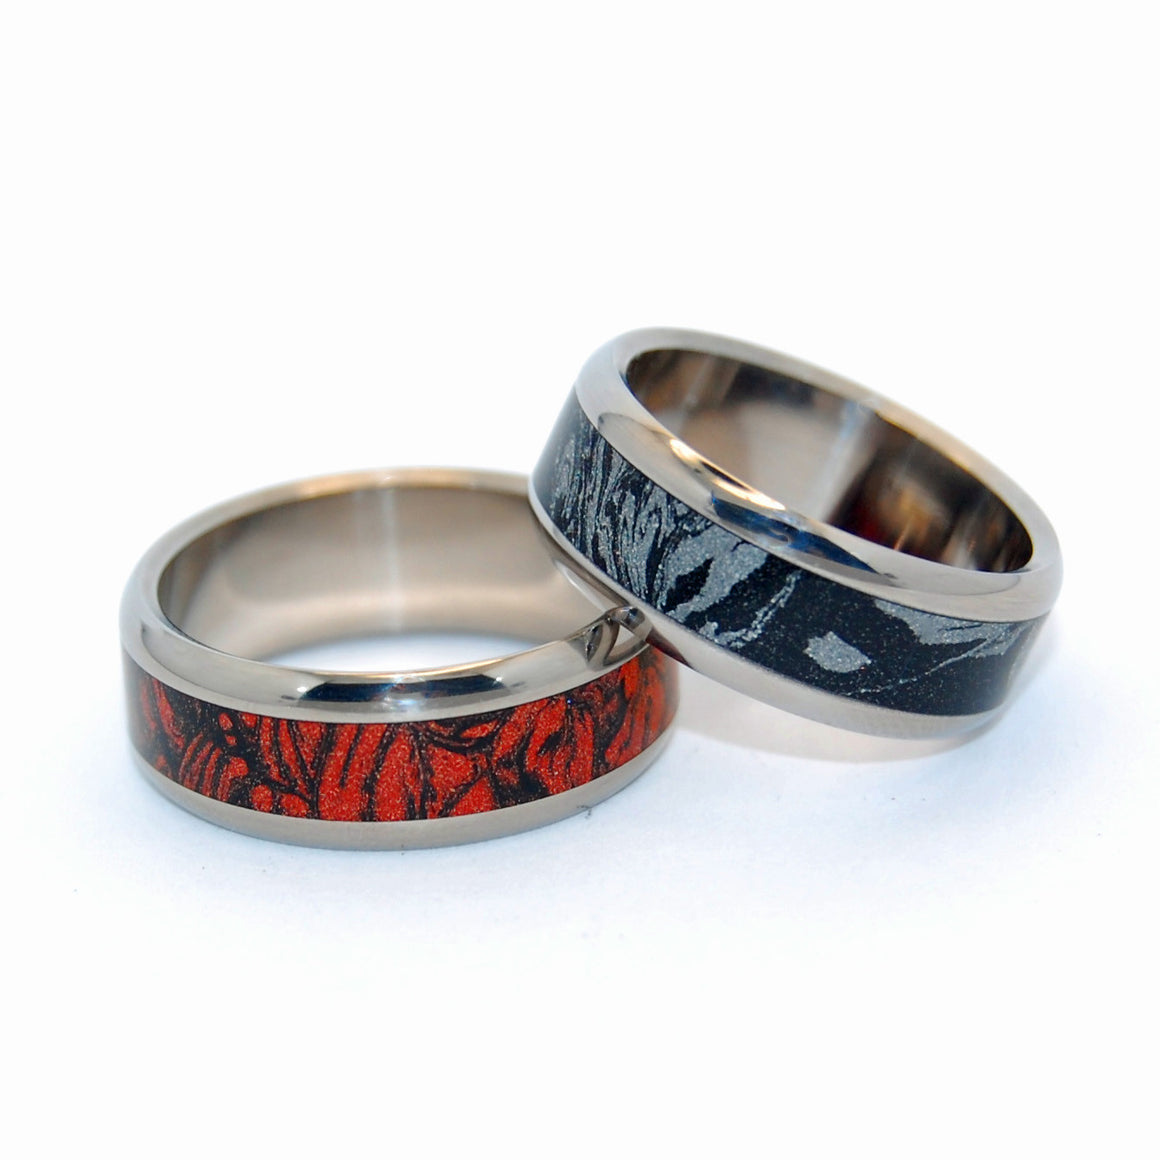 Katana and Kunoichi | M3 and Titanium Wedding Ring Set